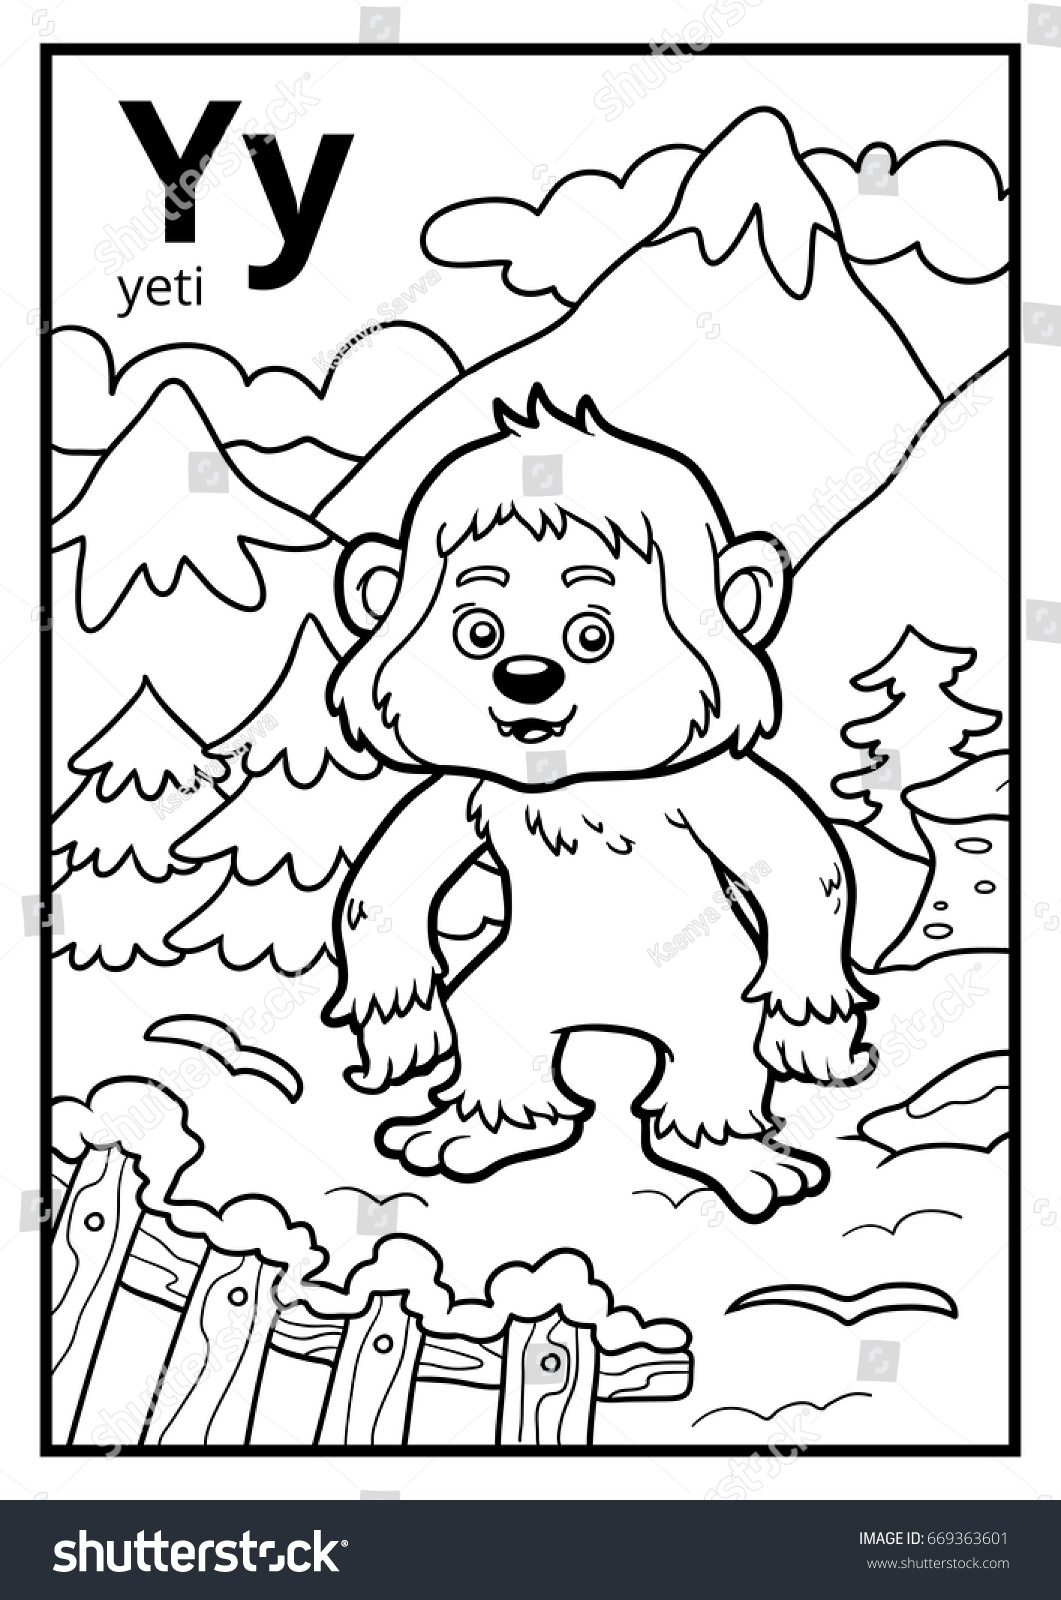 Coloring Book For Children Colorless Alphabet Letter Y Yeti